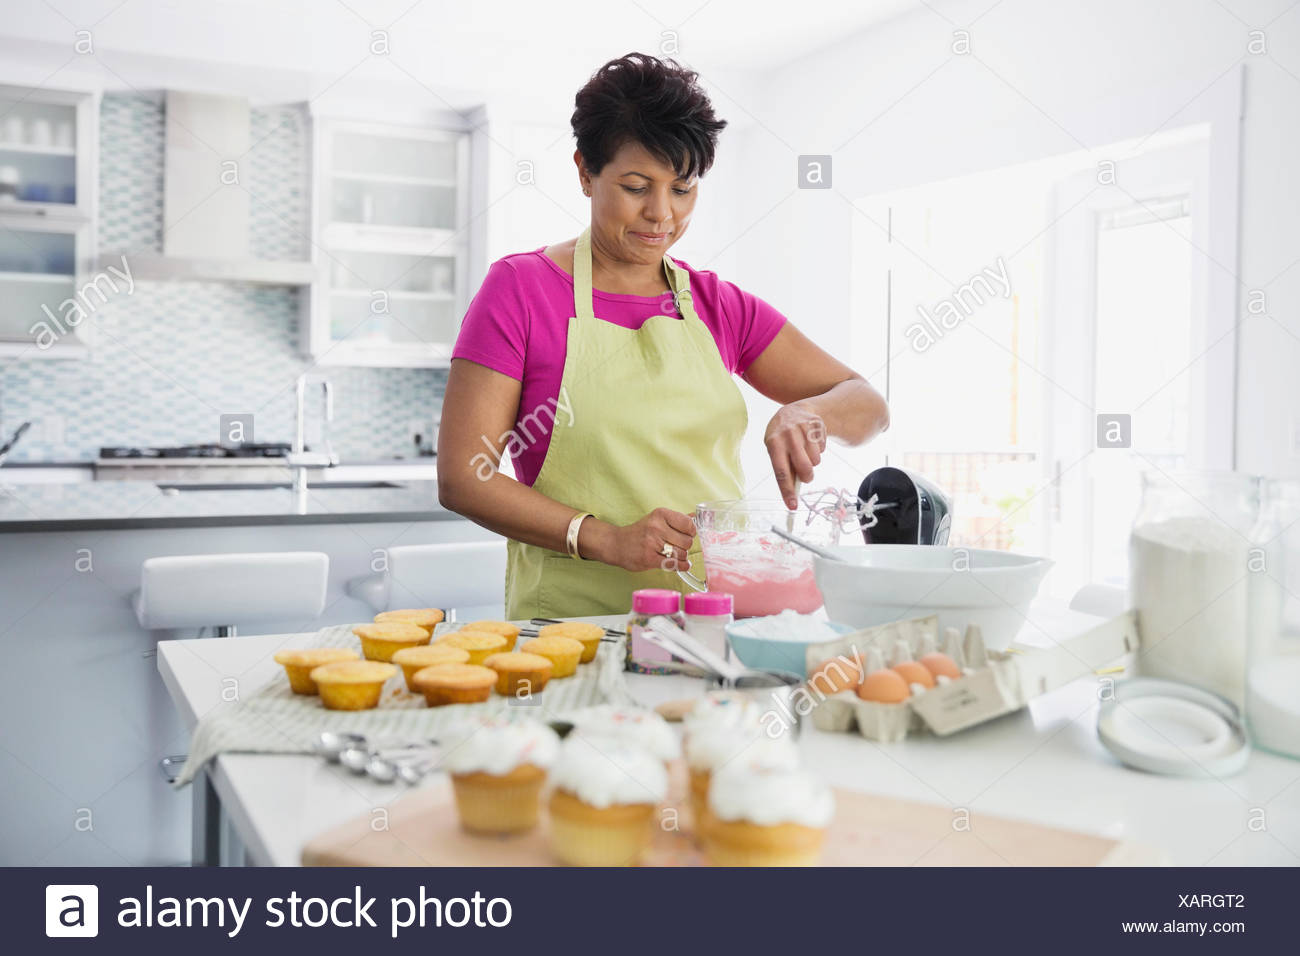 Woman mixing ingredients in bowl to decorate cupcakes - Stock Image